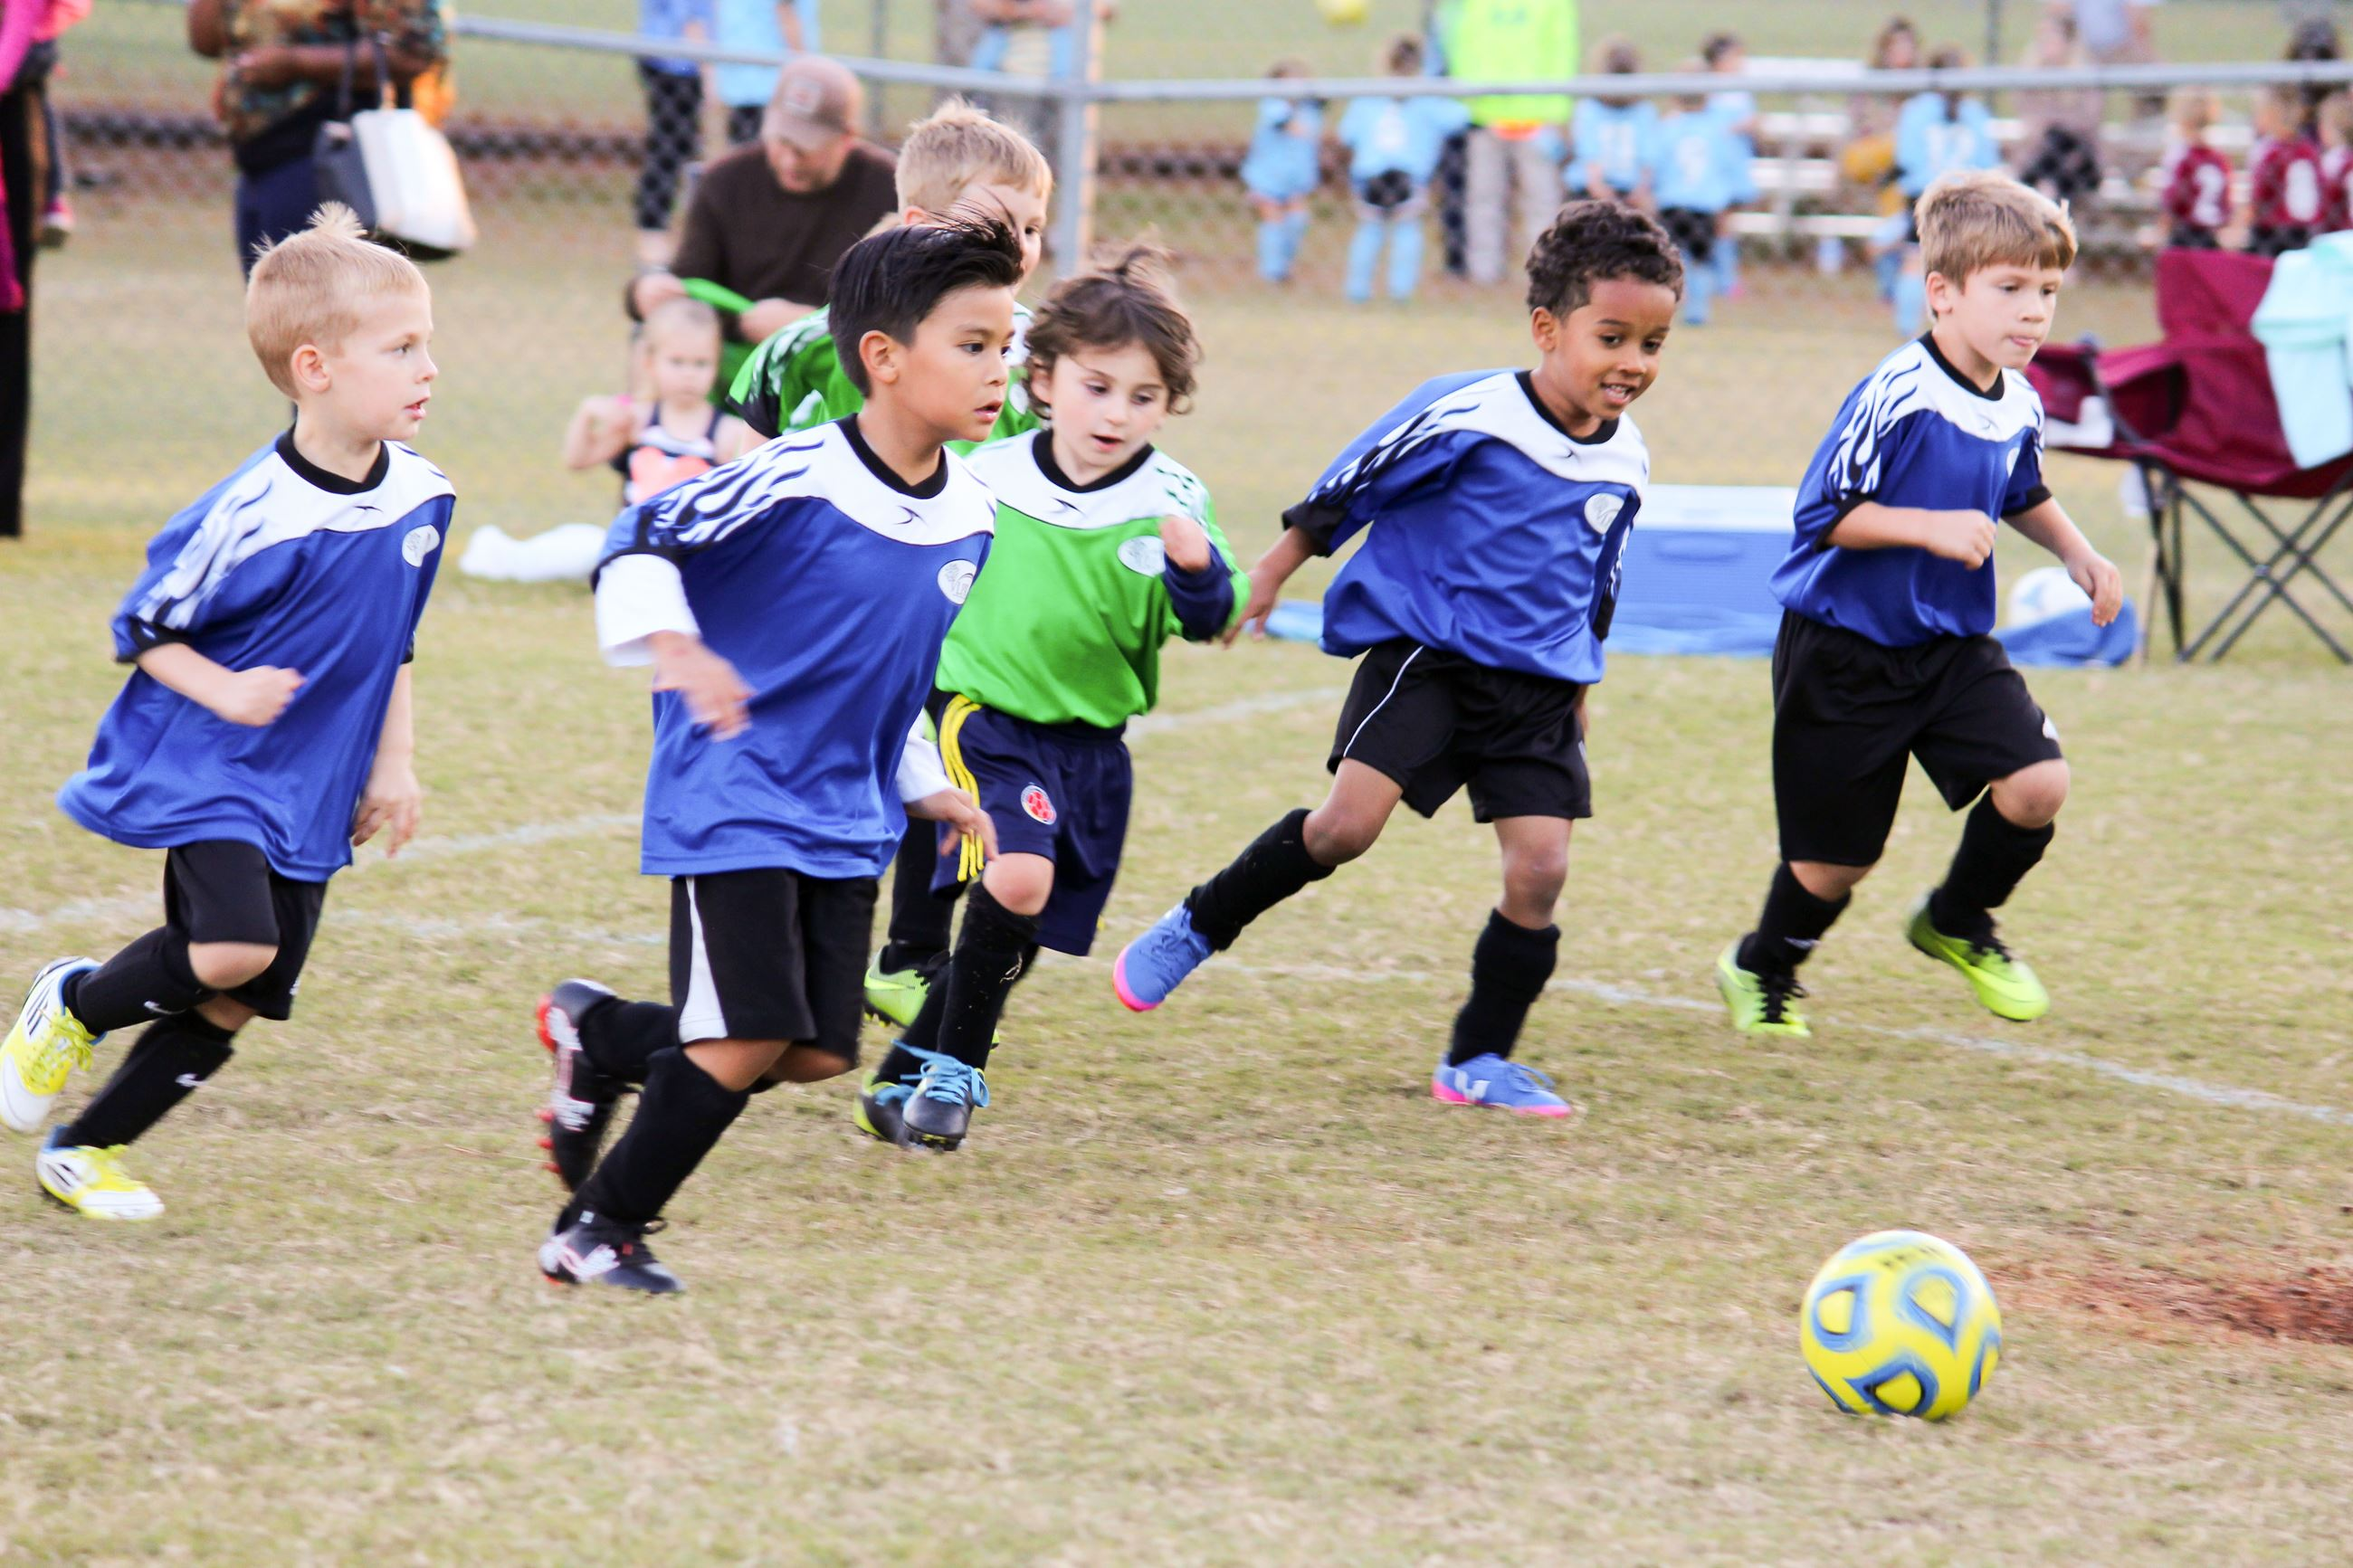 Image of children playing soccer.